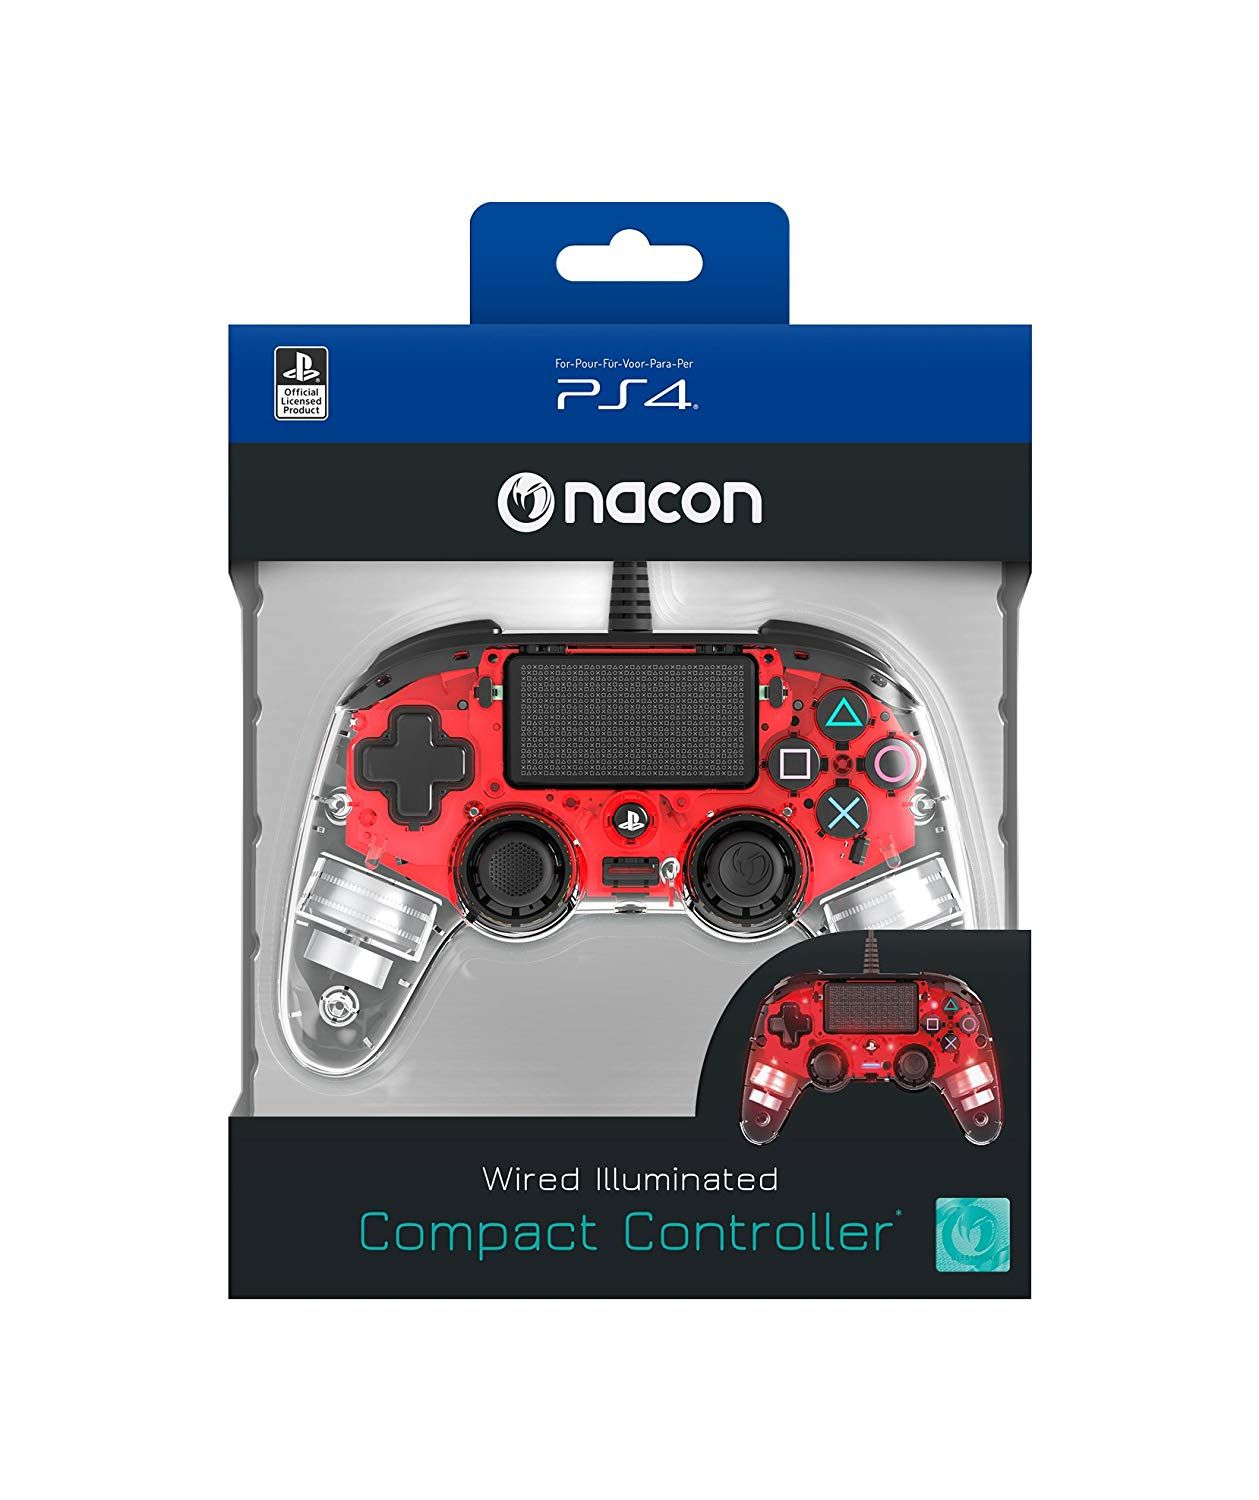 Nacon Wired llluminated Compact PlayStation 4 Controller - Red (PS4)